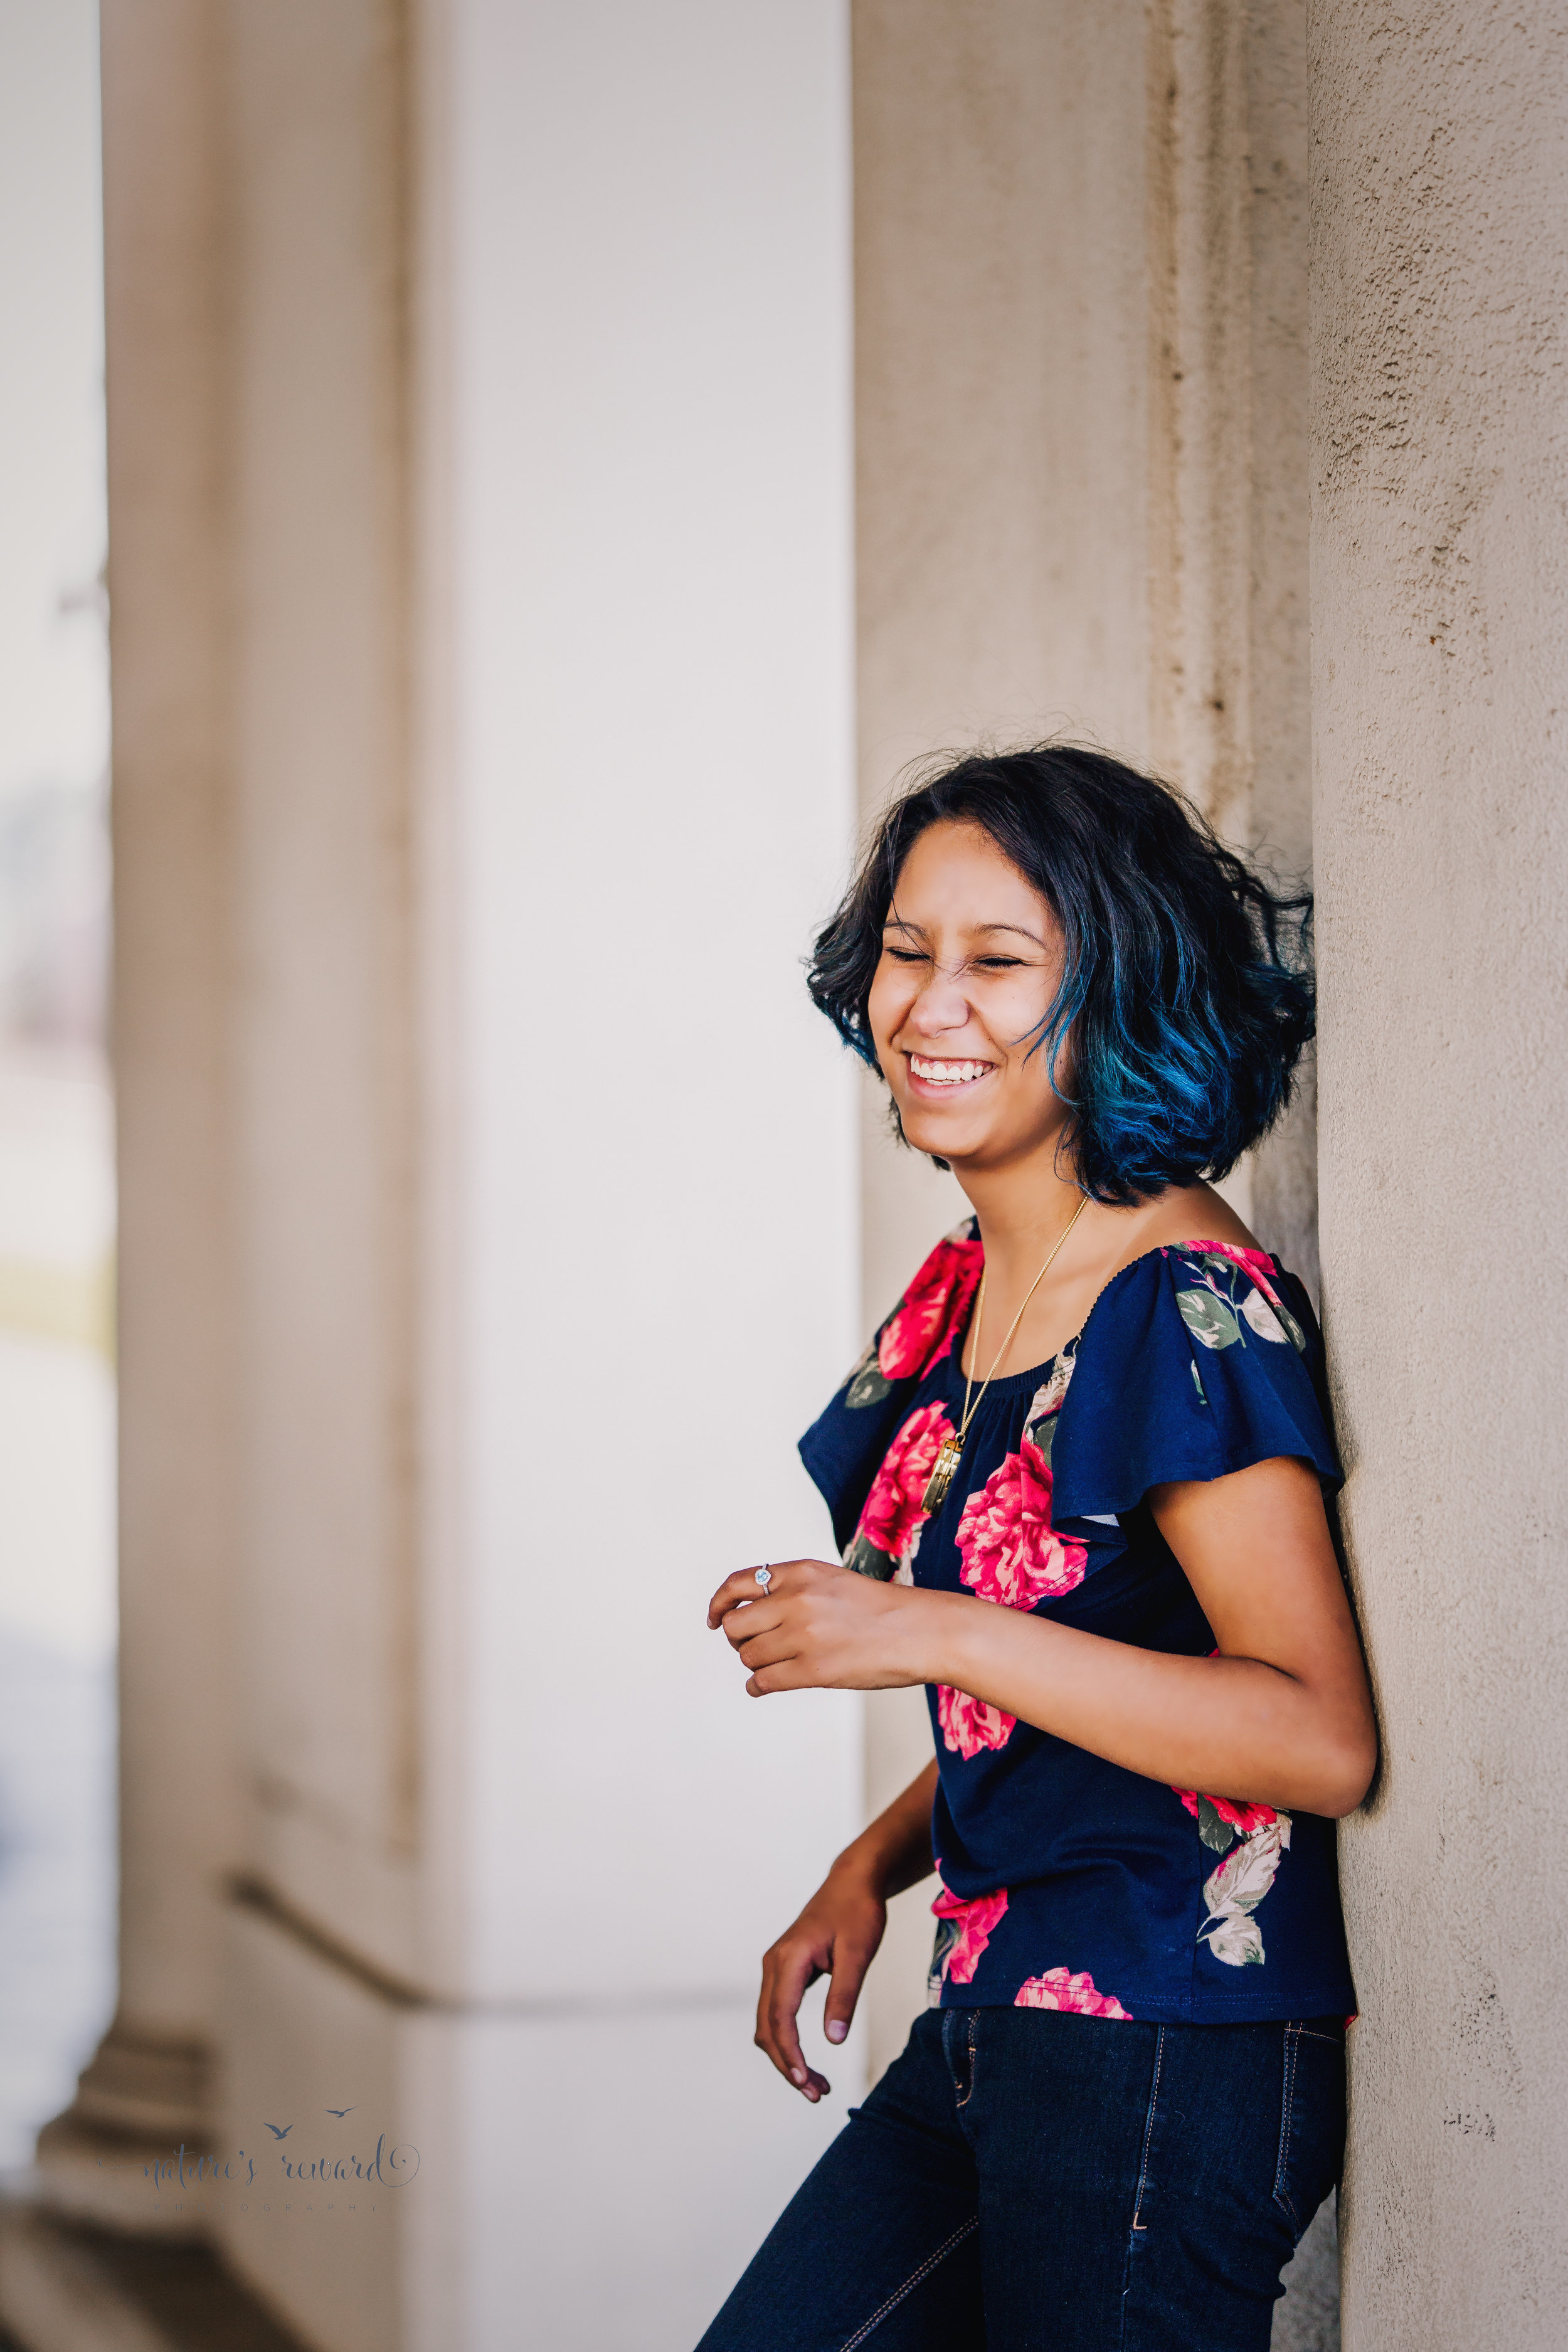 Gorgeous Senior Portrait session in downtown location by Nature's Reward Photography